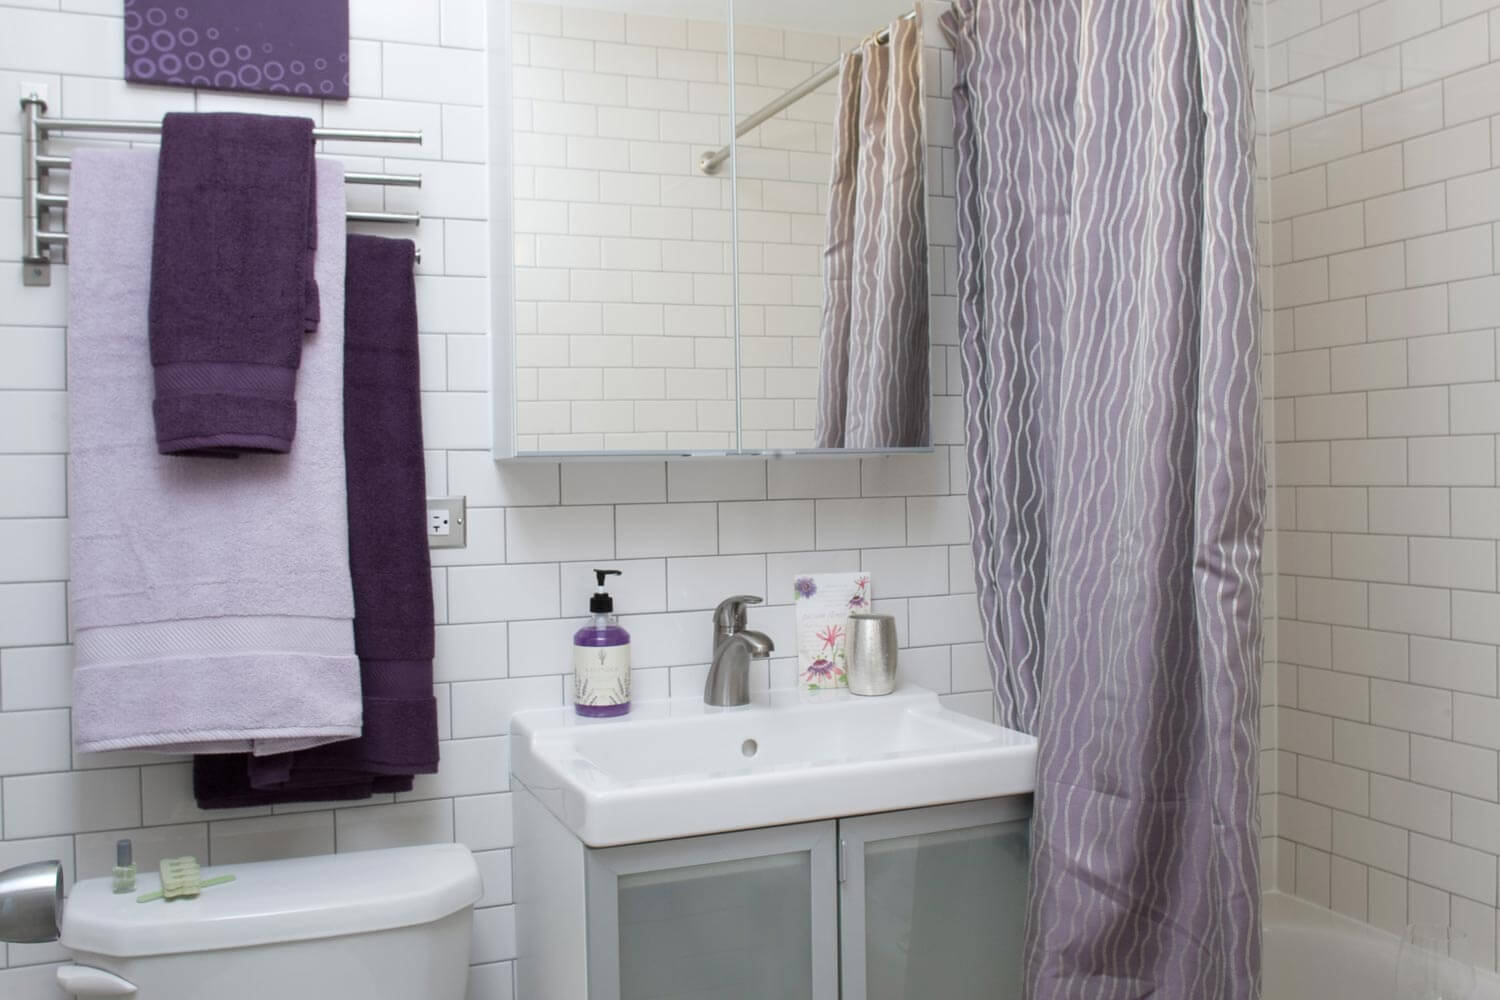 Affordable open concept 1 bedroom apartment in chicago for Bathroom for rent